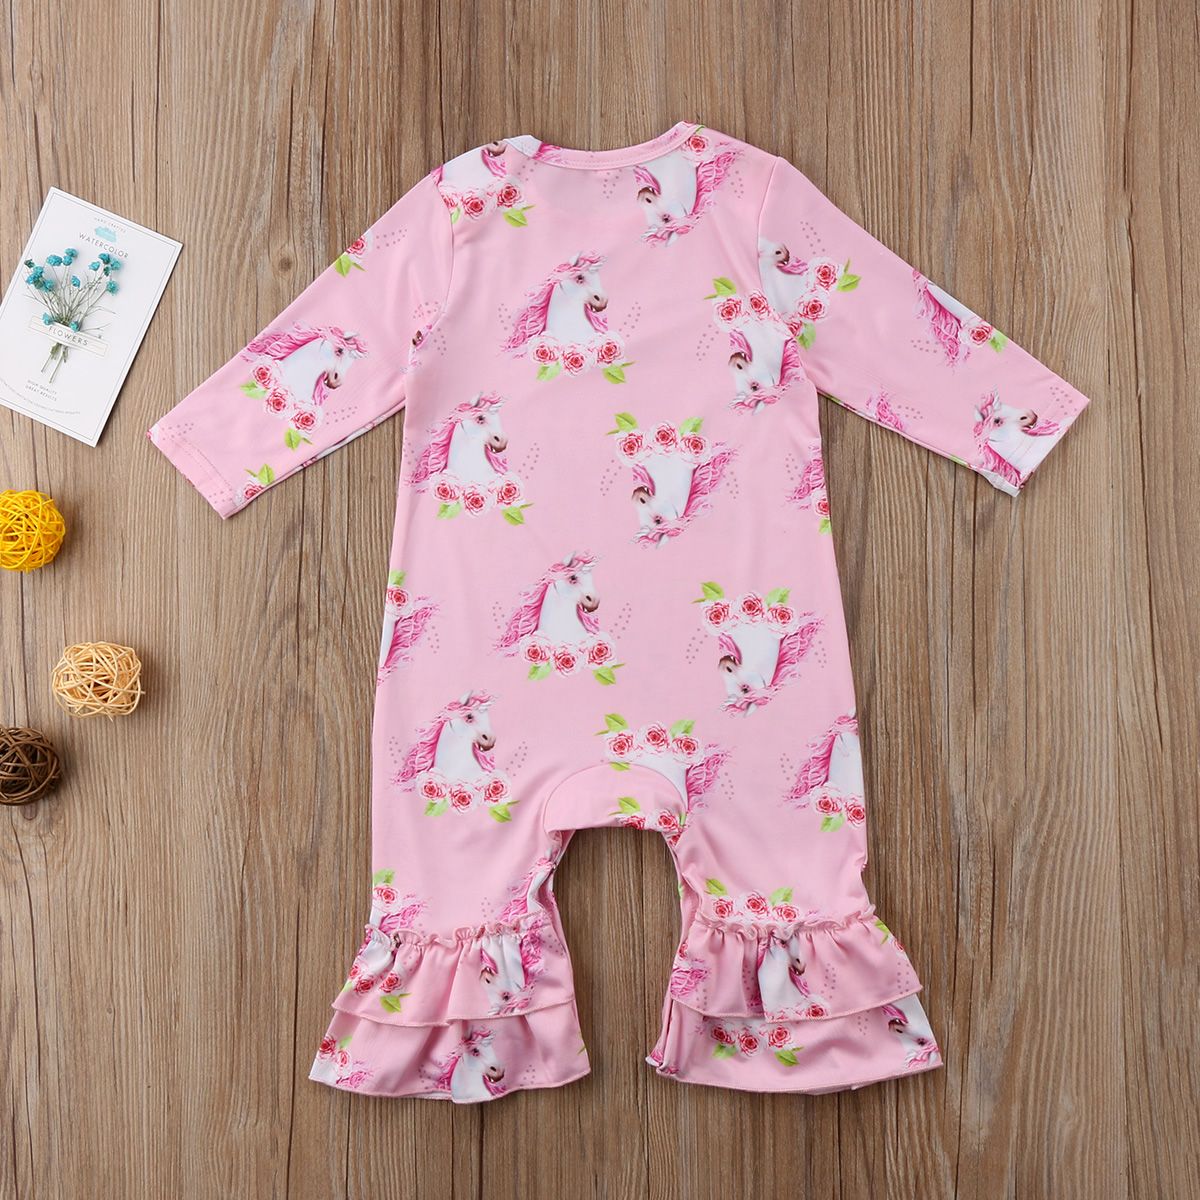 48f24f9a4ec1 Newborn Baby Girl Bloom flower Rompers Long Sleeve Romper Baby Girls Ruffle  Jumpsuit Outfits Toddler baby Clothing-in Rompers from Mother   Kids on ...